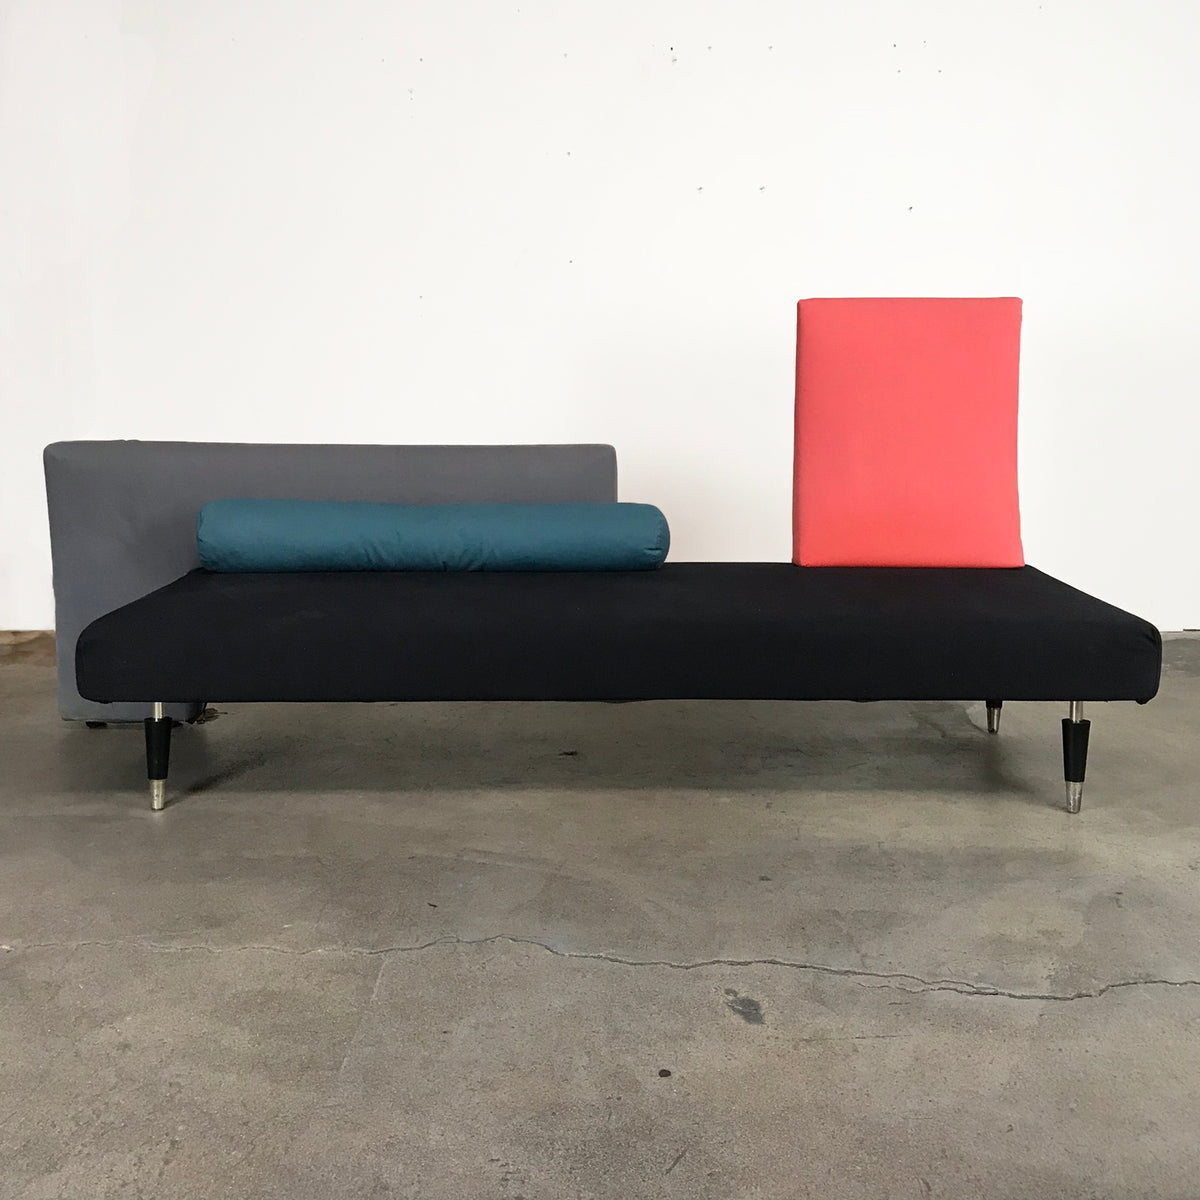 Vintage Sofa by Paolo Piva